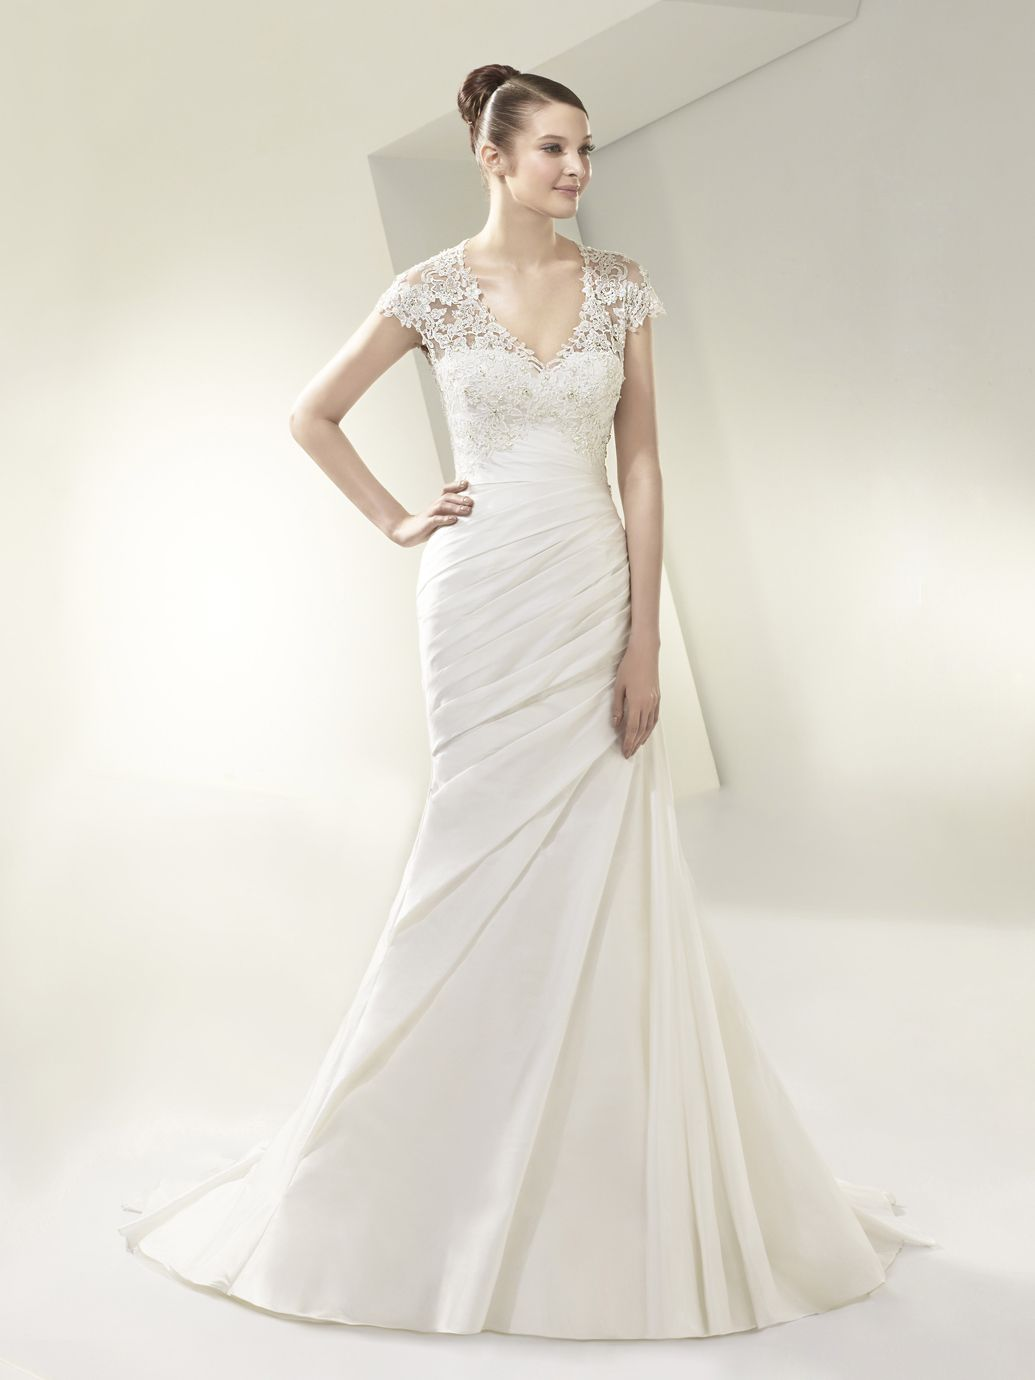 84918e57c657 Beautiful BT14-30 Enzoani;;; CAN BE FOUND AT: Country Way Bridal in  Haddonfield, Bridal Garden in Marlton, Irma's Bridal in Cherry Hill, &  Jan's Boutique in ...